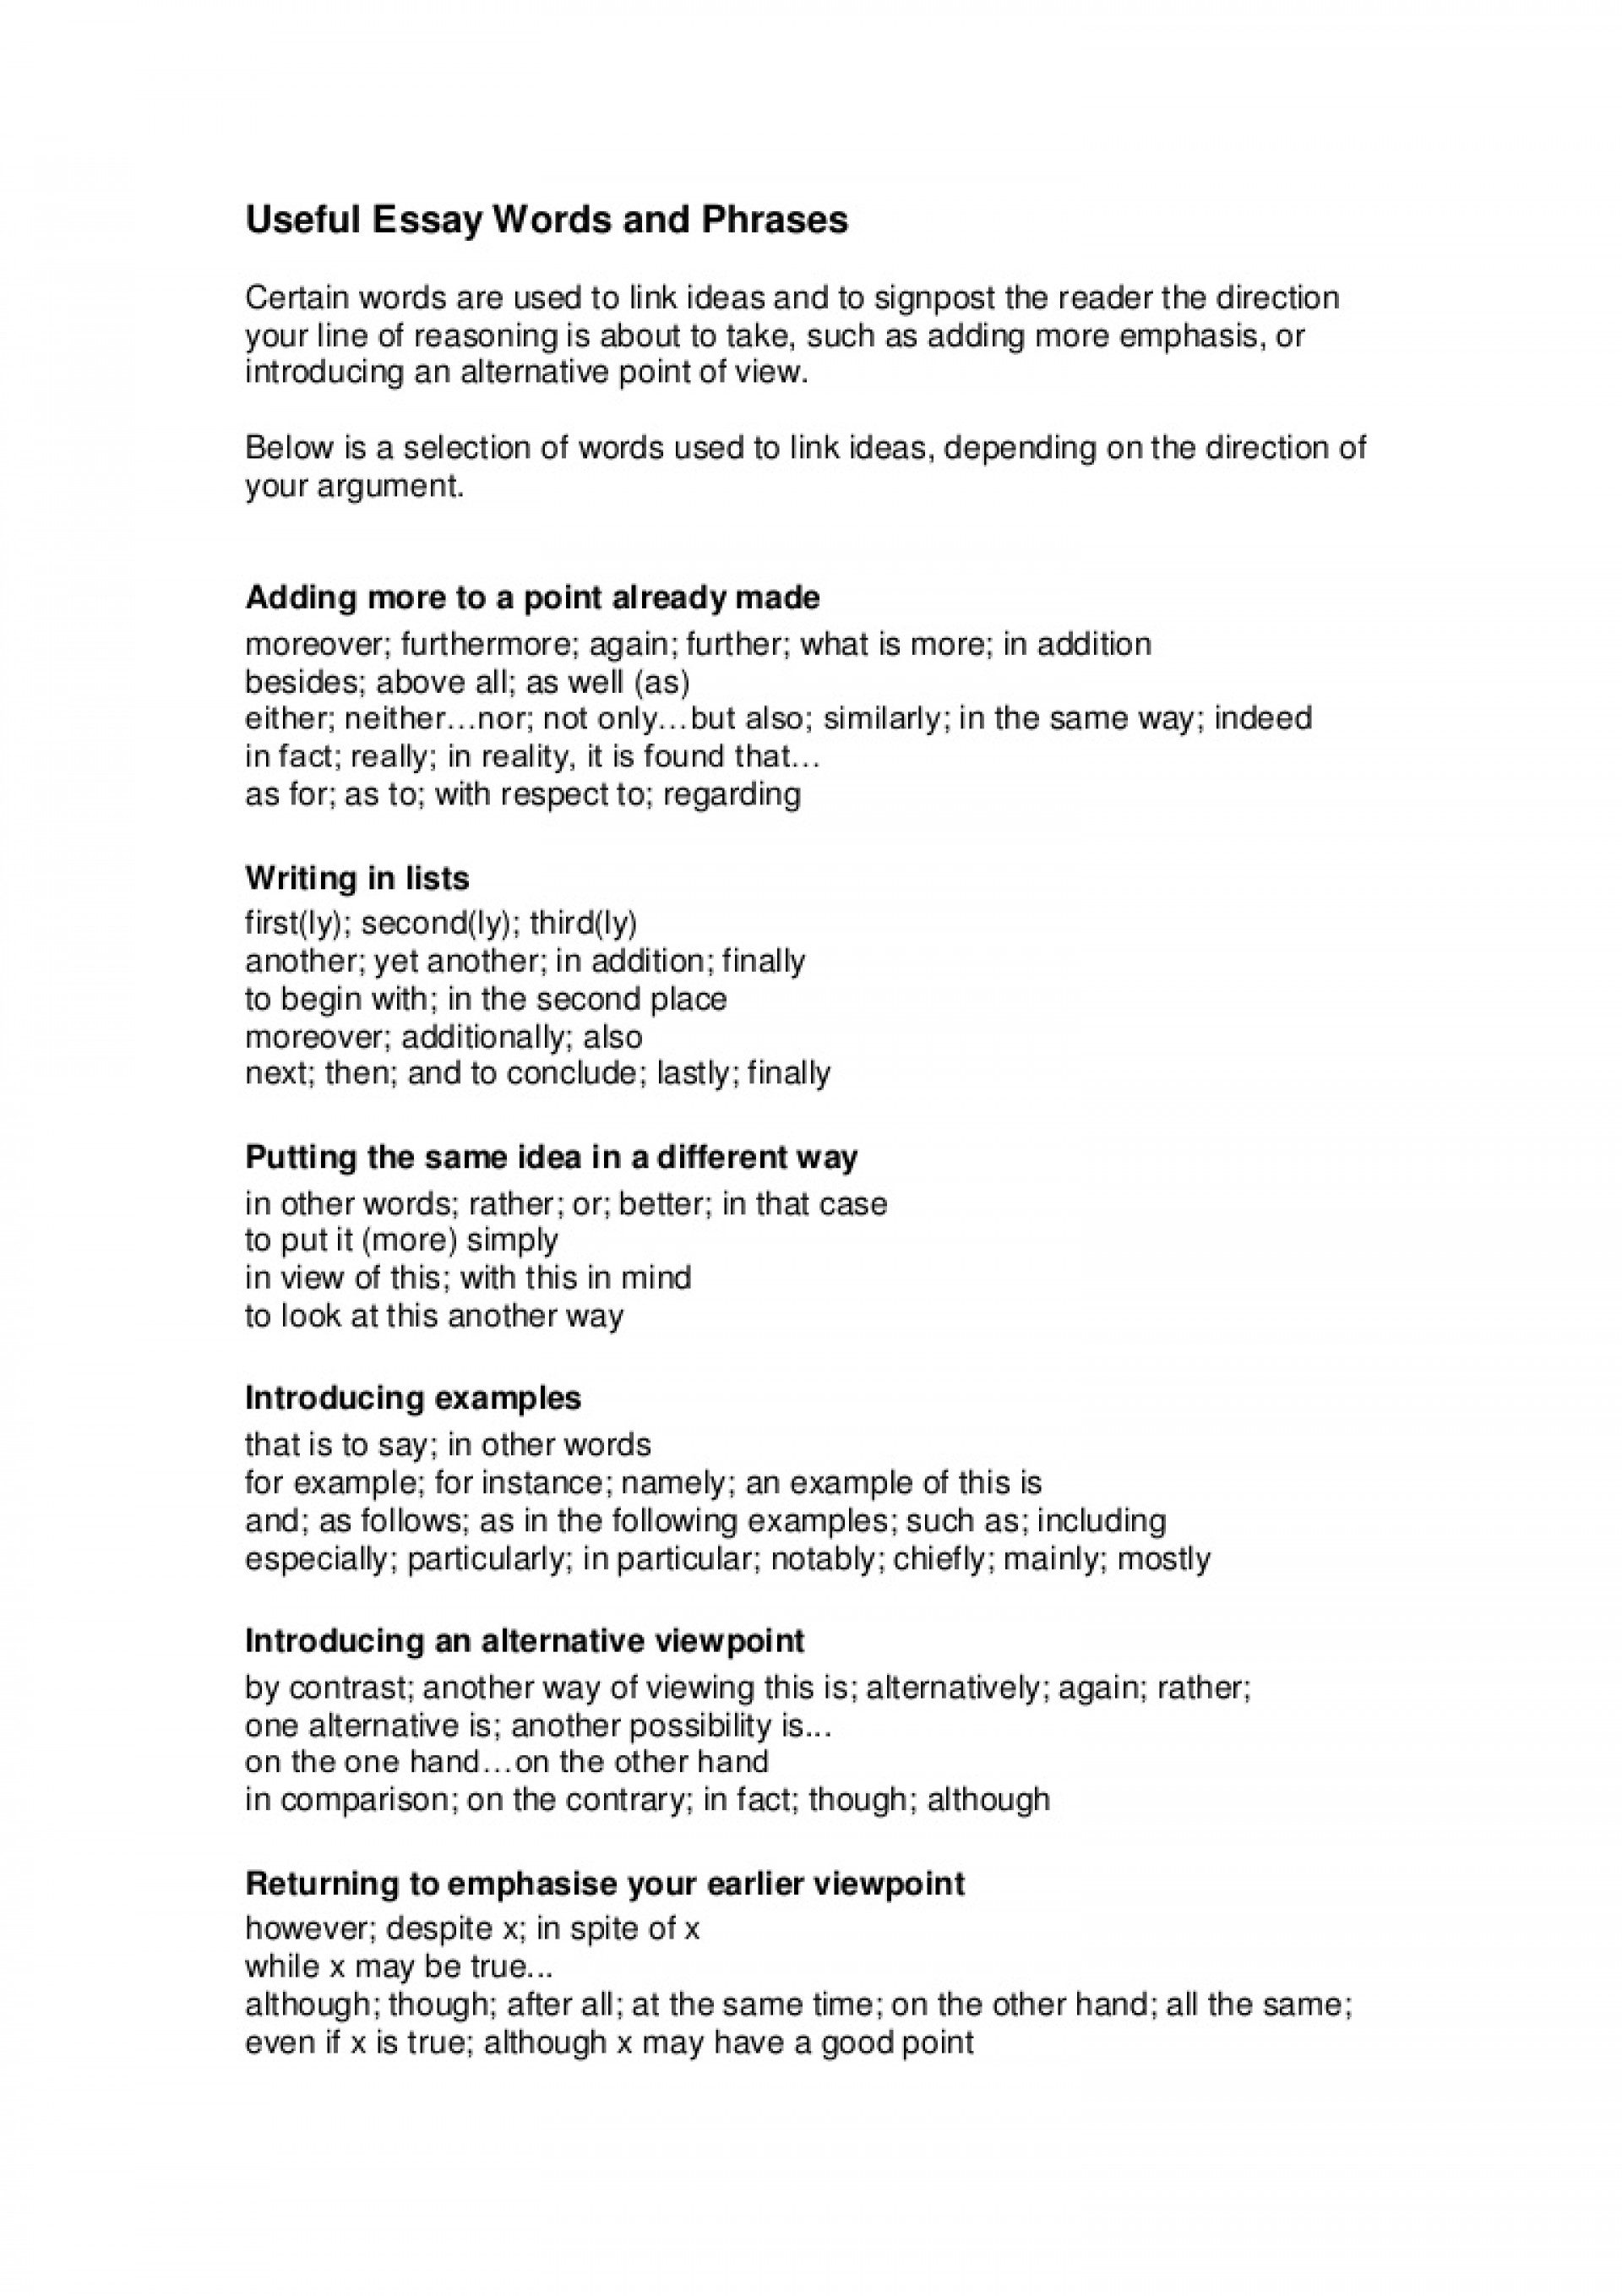 016 Essay Example Writtenassignments2usefulessaywordsandphrases Phpapp02 Thumbnail How To Begin Incredible An Write On A Book You Didn't Read Open Paragraph Start About Yourself For College 1920